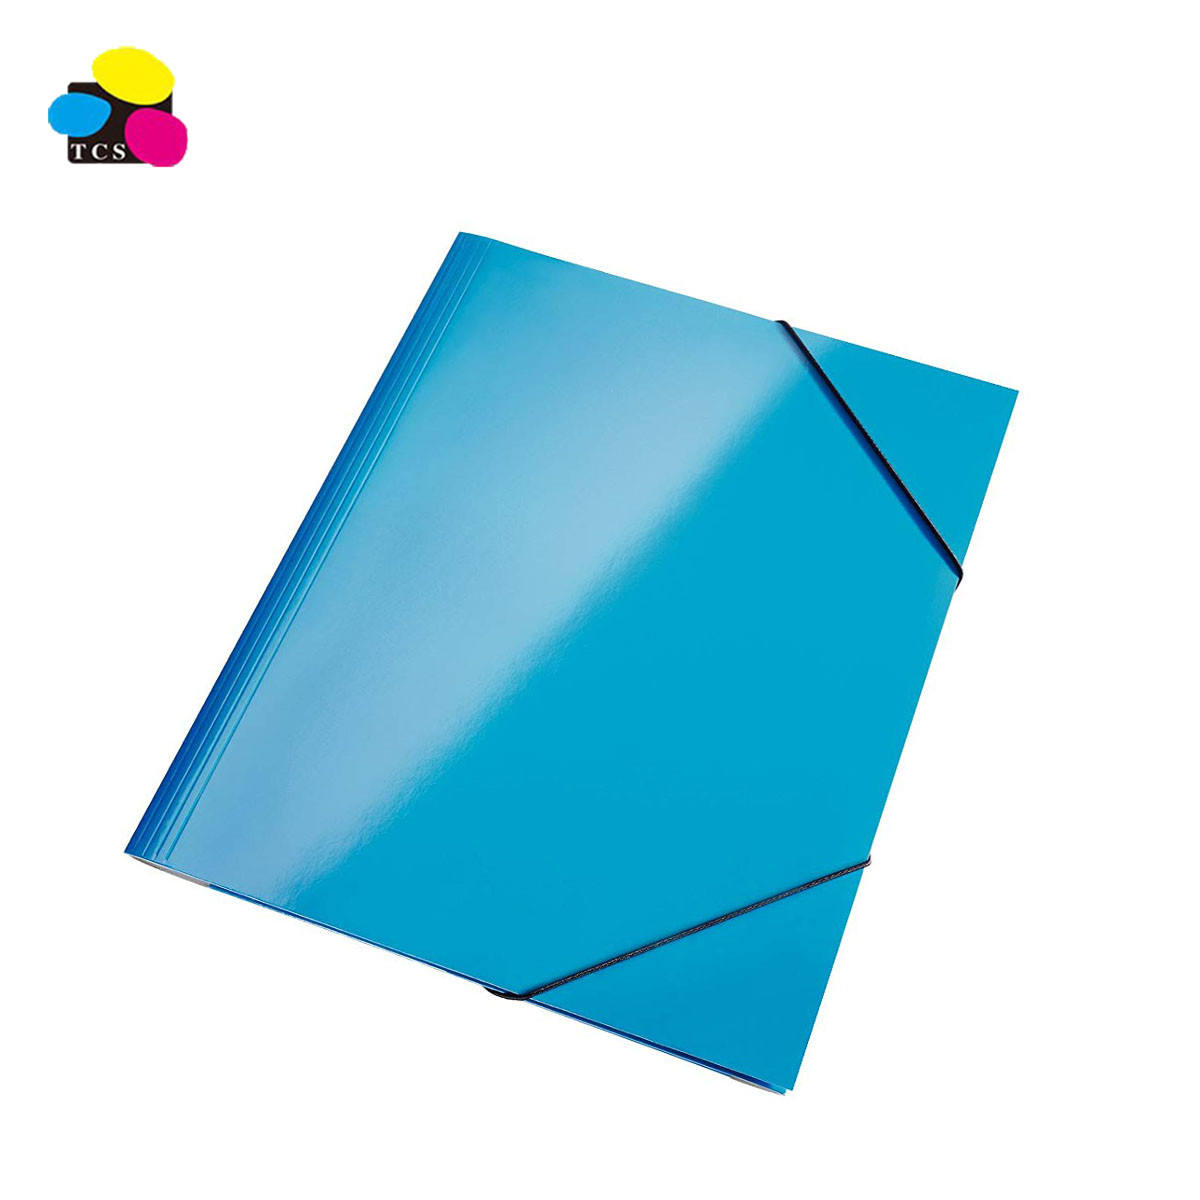 Manufacturers Wholesale 300gsm Glossy PP Laminated 3-Flap Folder With Elastic Bands For School and Office Supplies